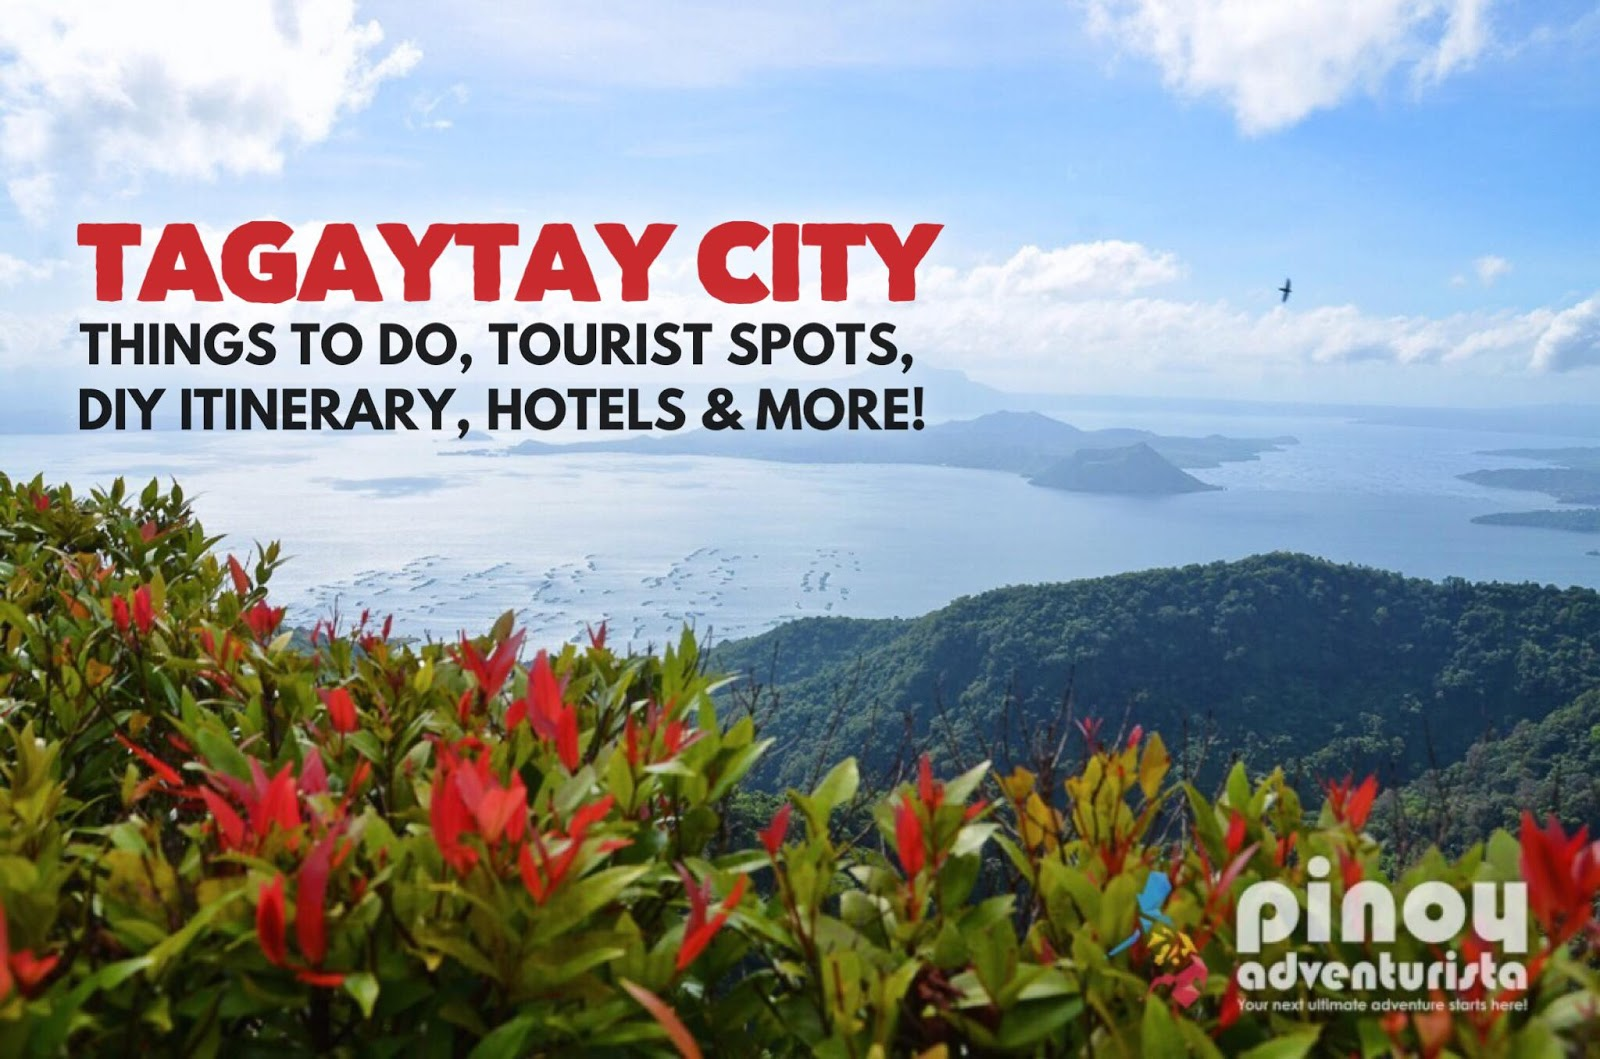 2019 TAGAYTAY TRAVEL GUIDE: Things to Do, Tourist Spots and